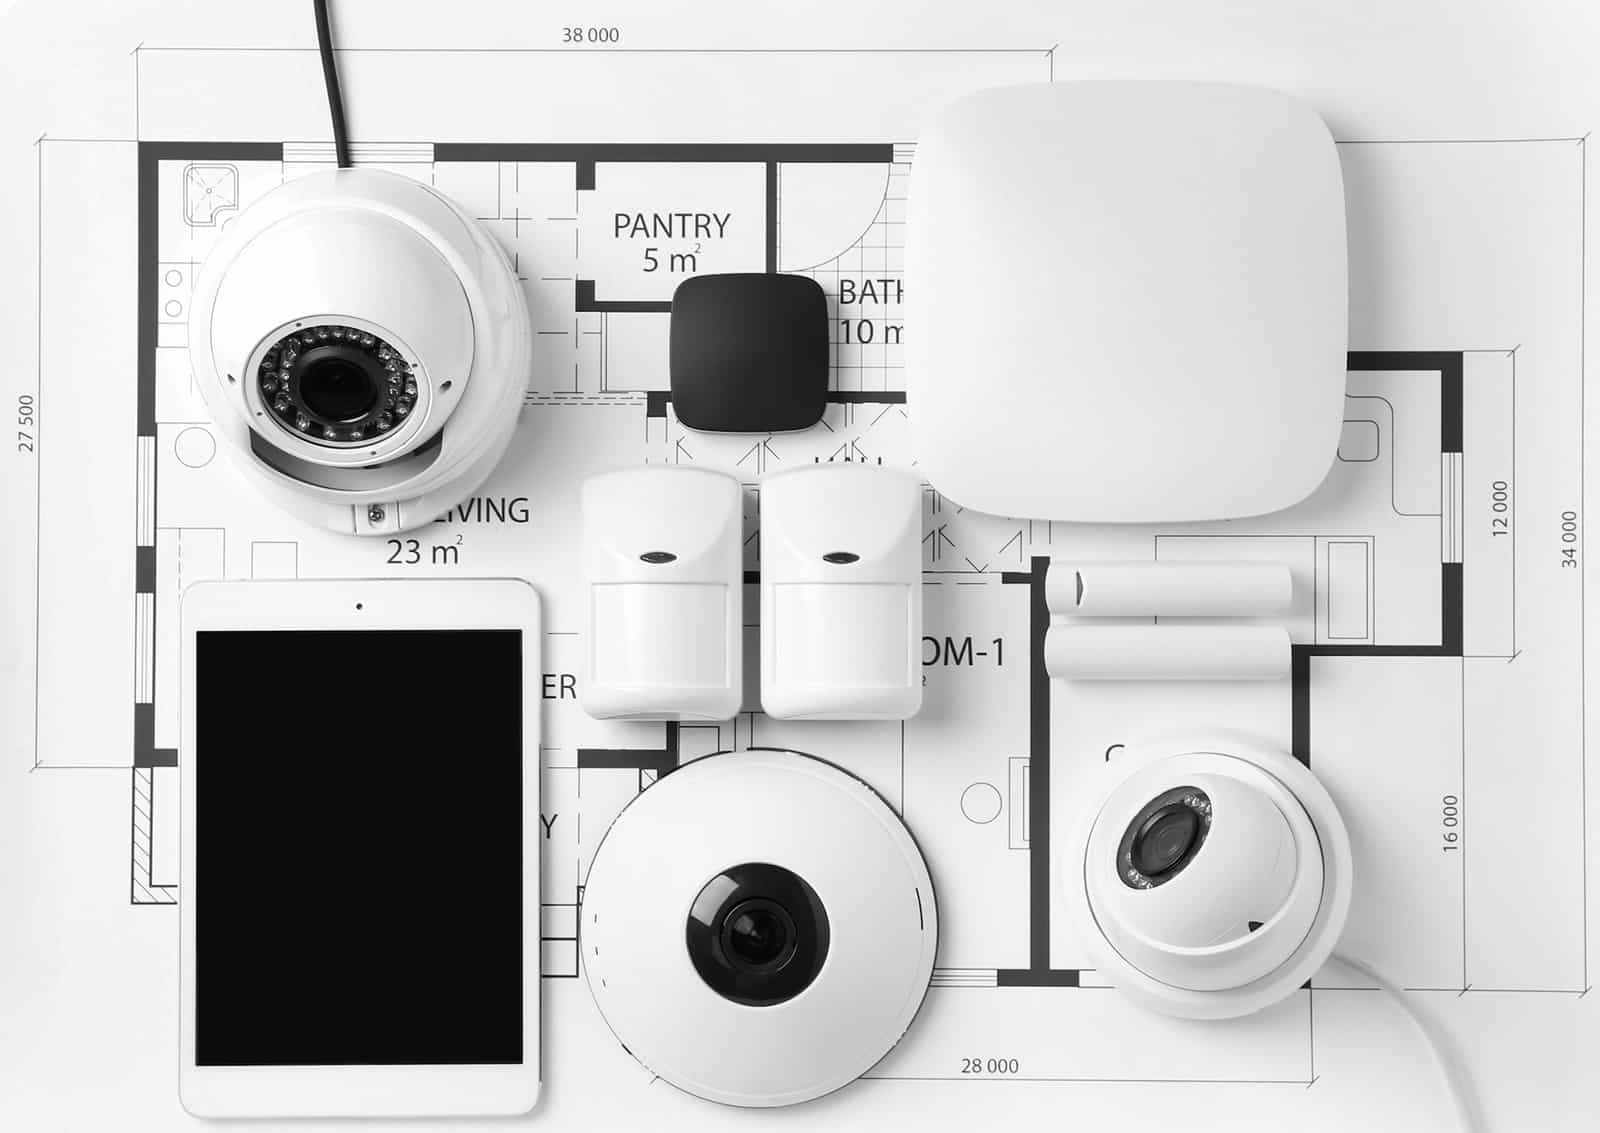 Increase Manufacturing Capacity for Building Security System Products Image